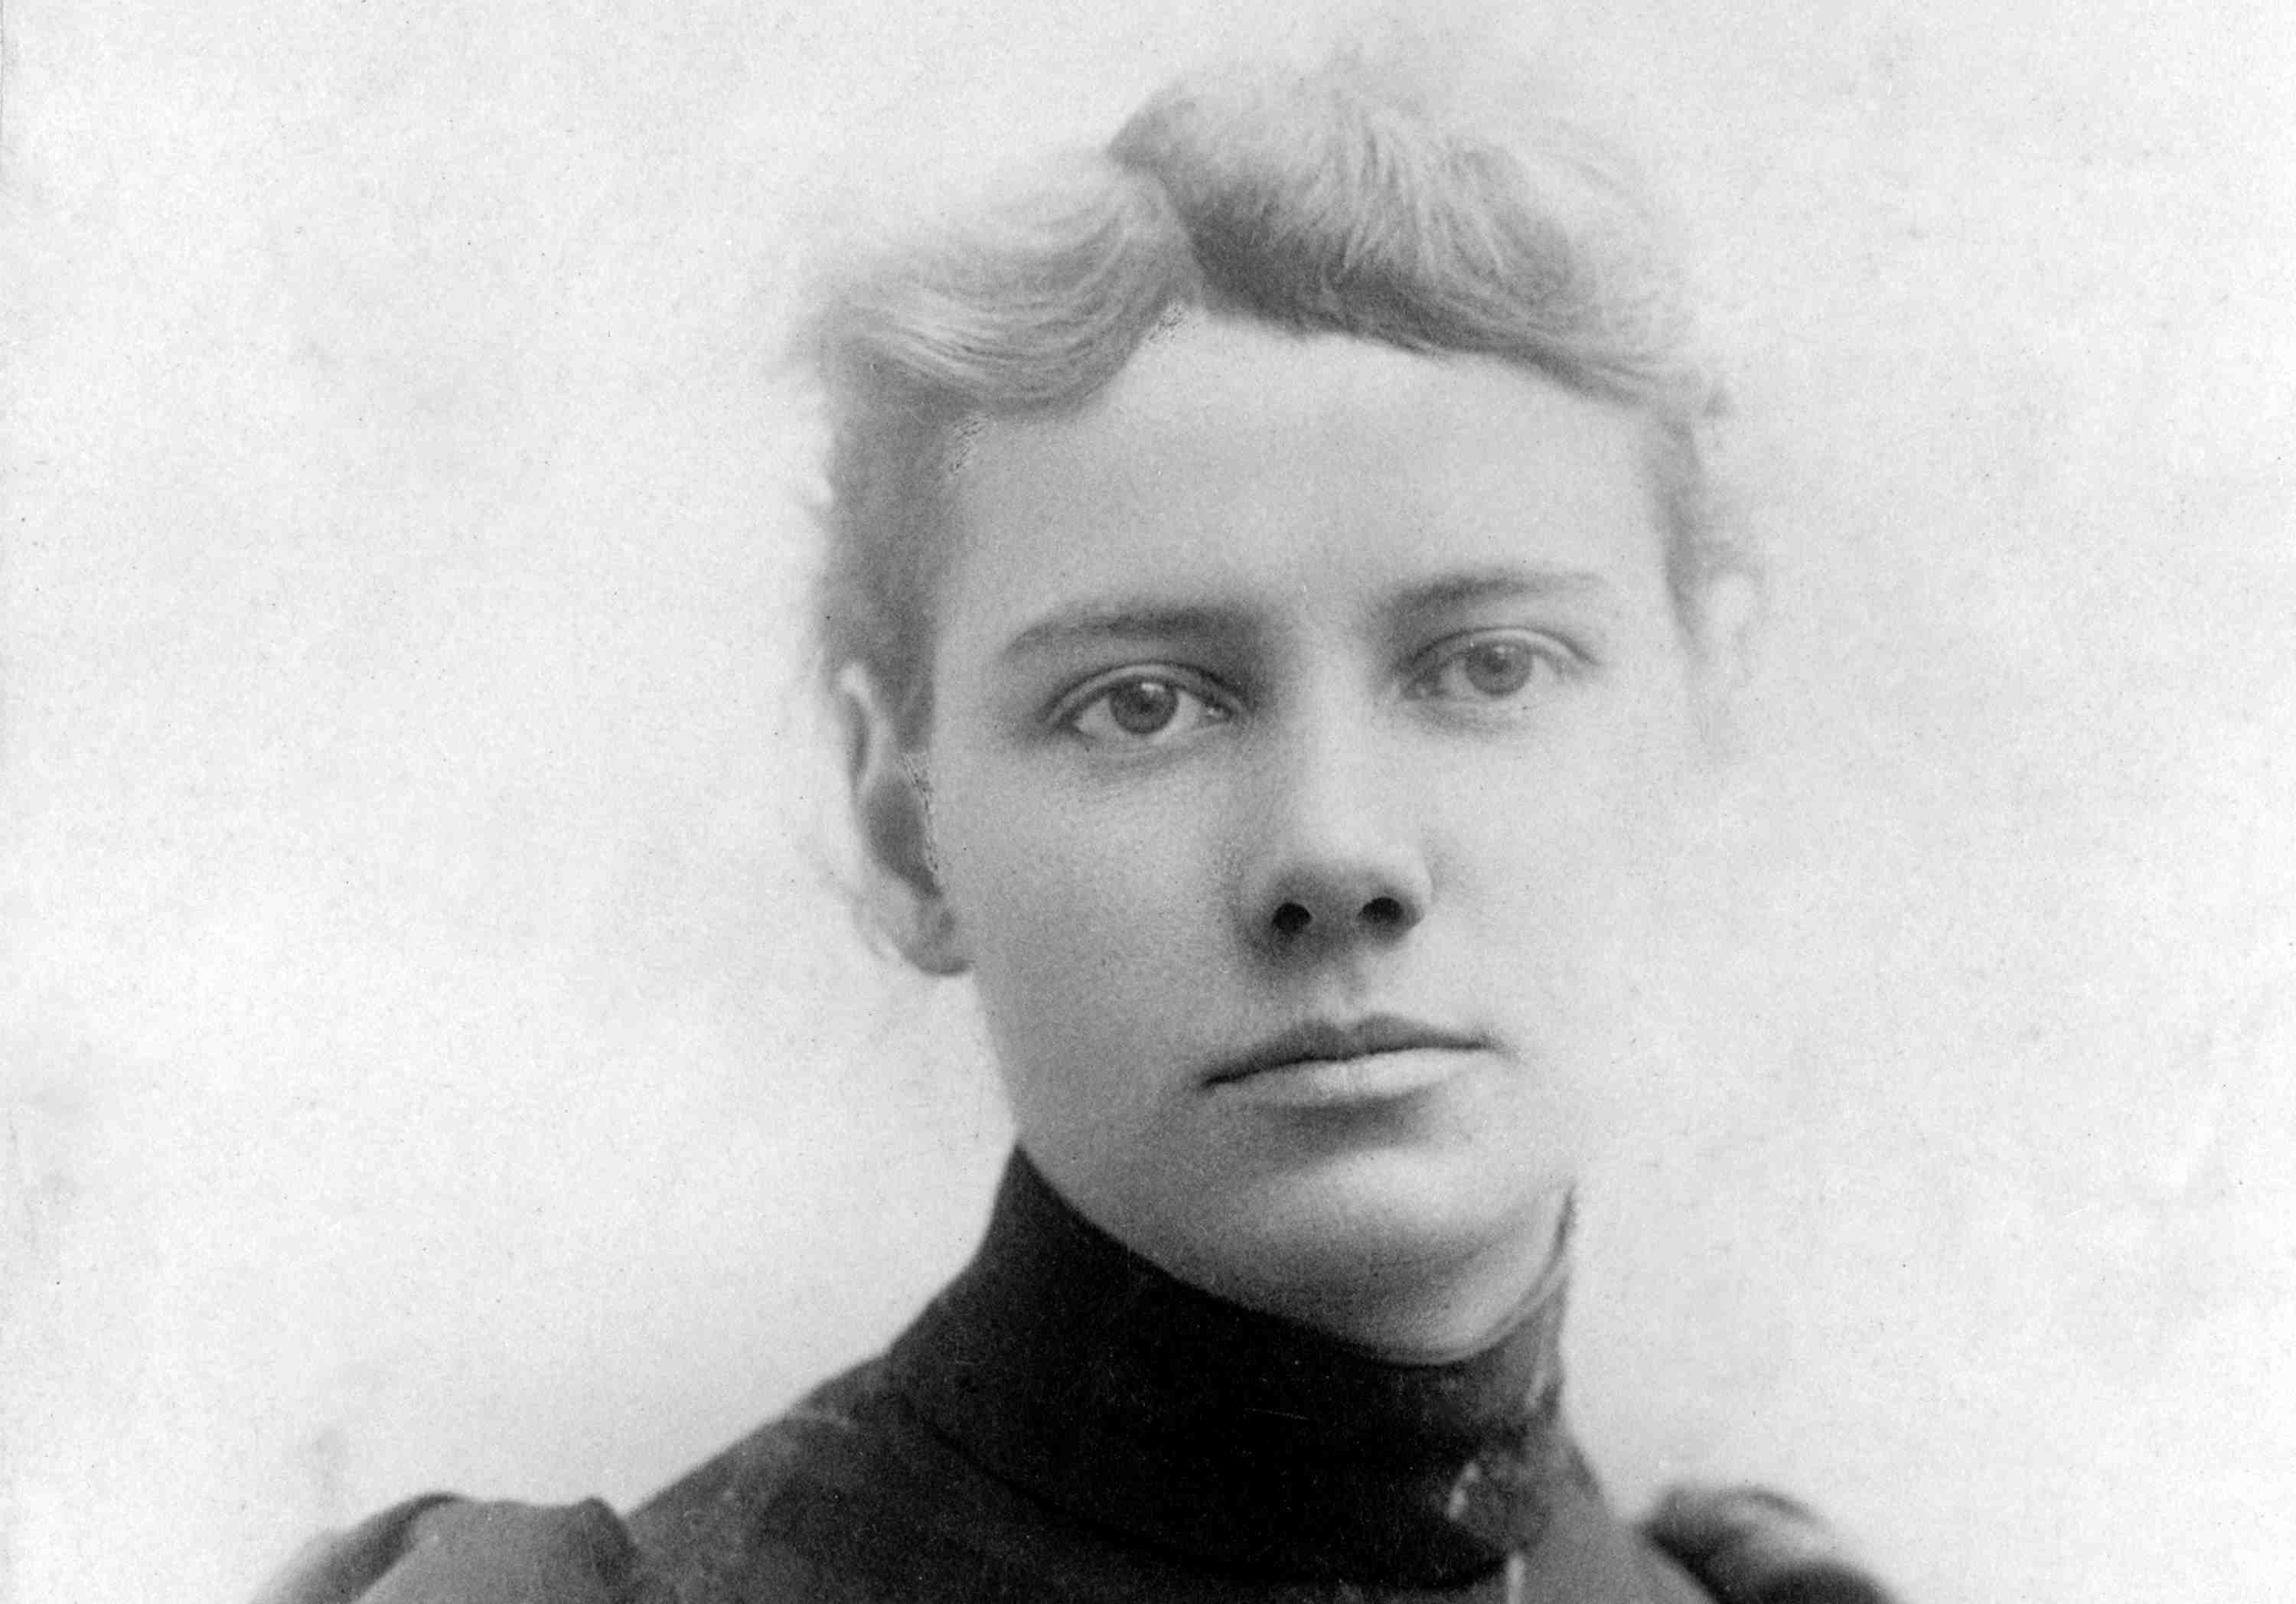 Photographic portrait of Elizabeth Cochrane, who used the newspaper byline Nellie Bly